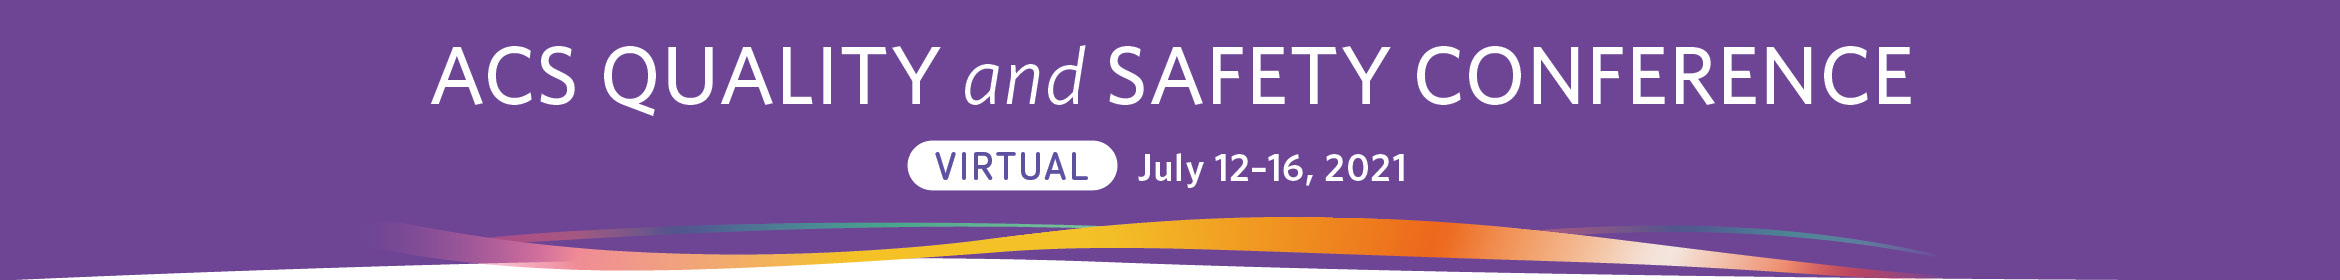 2021 ACS Quality and Safety Conference - VIRTUAL Main banner